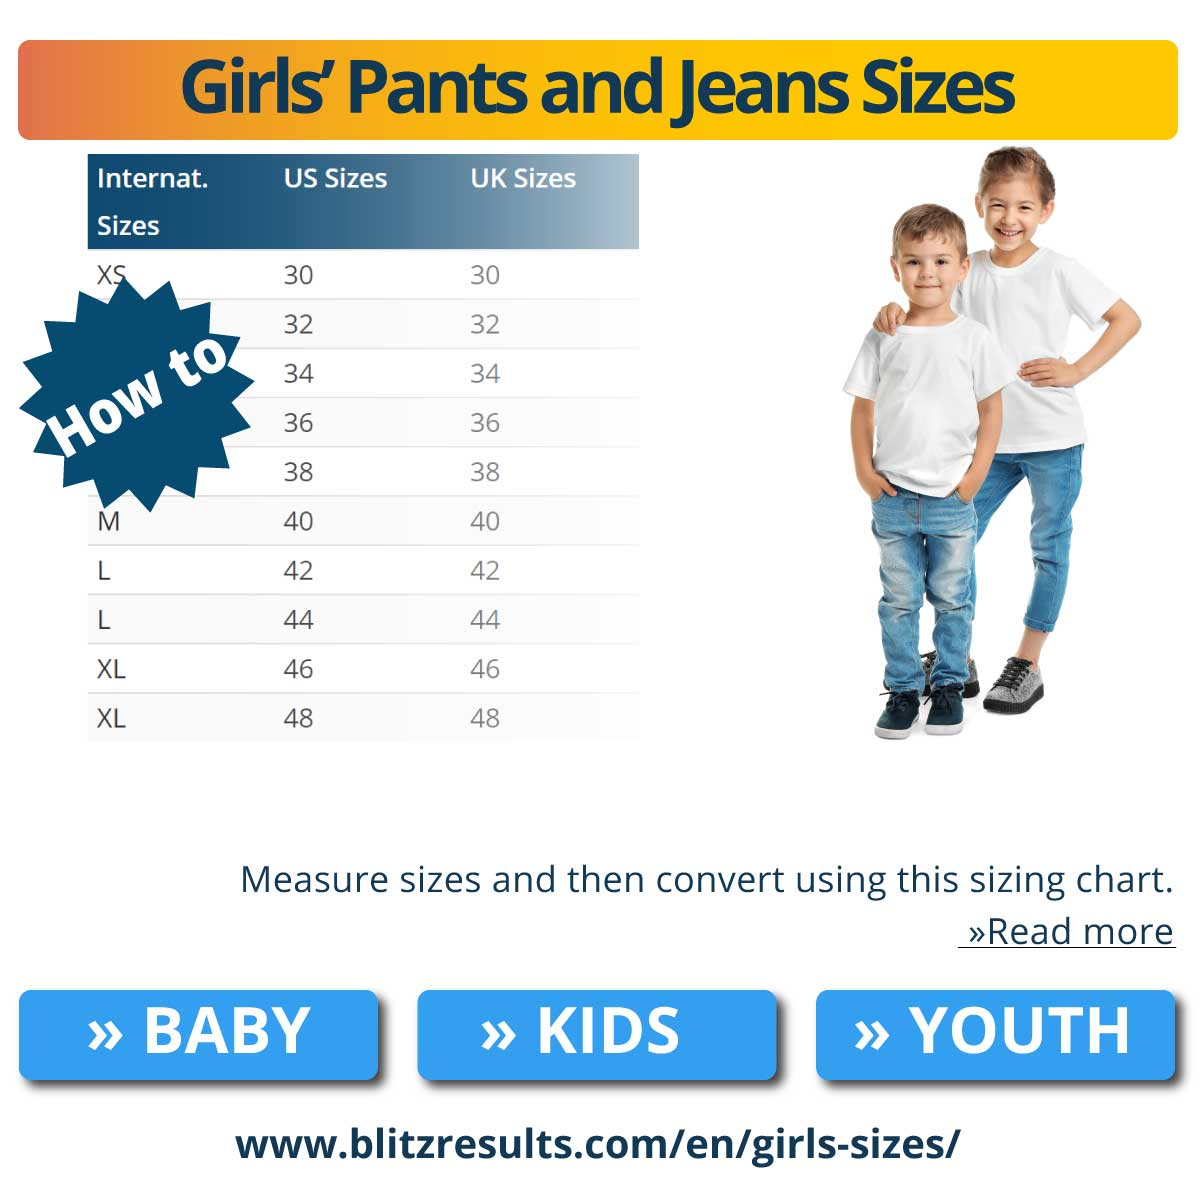 Girls' Pants and Jeans Sizes